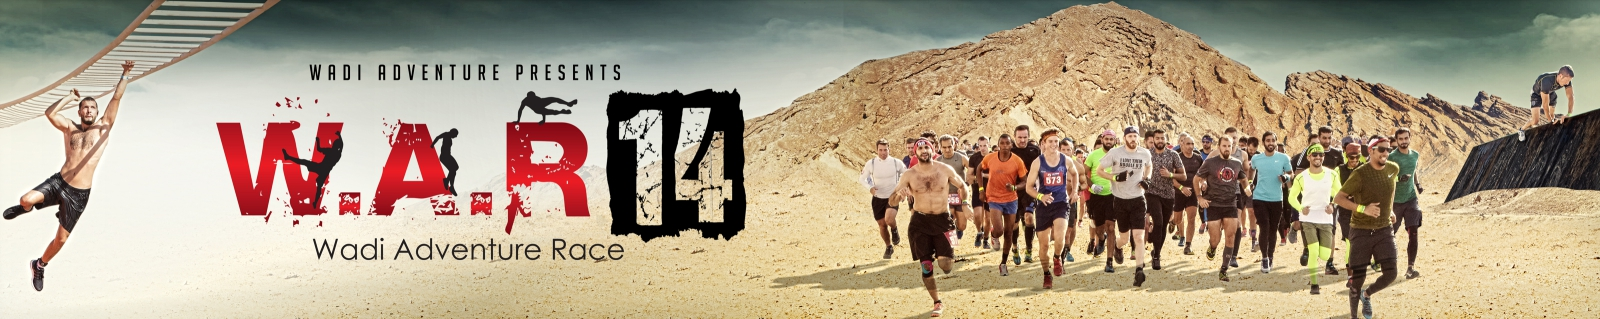 Wadi Adventure Race 14